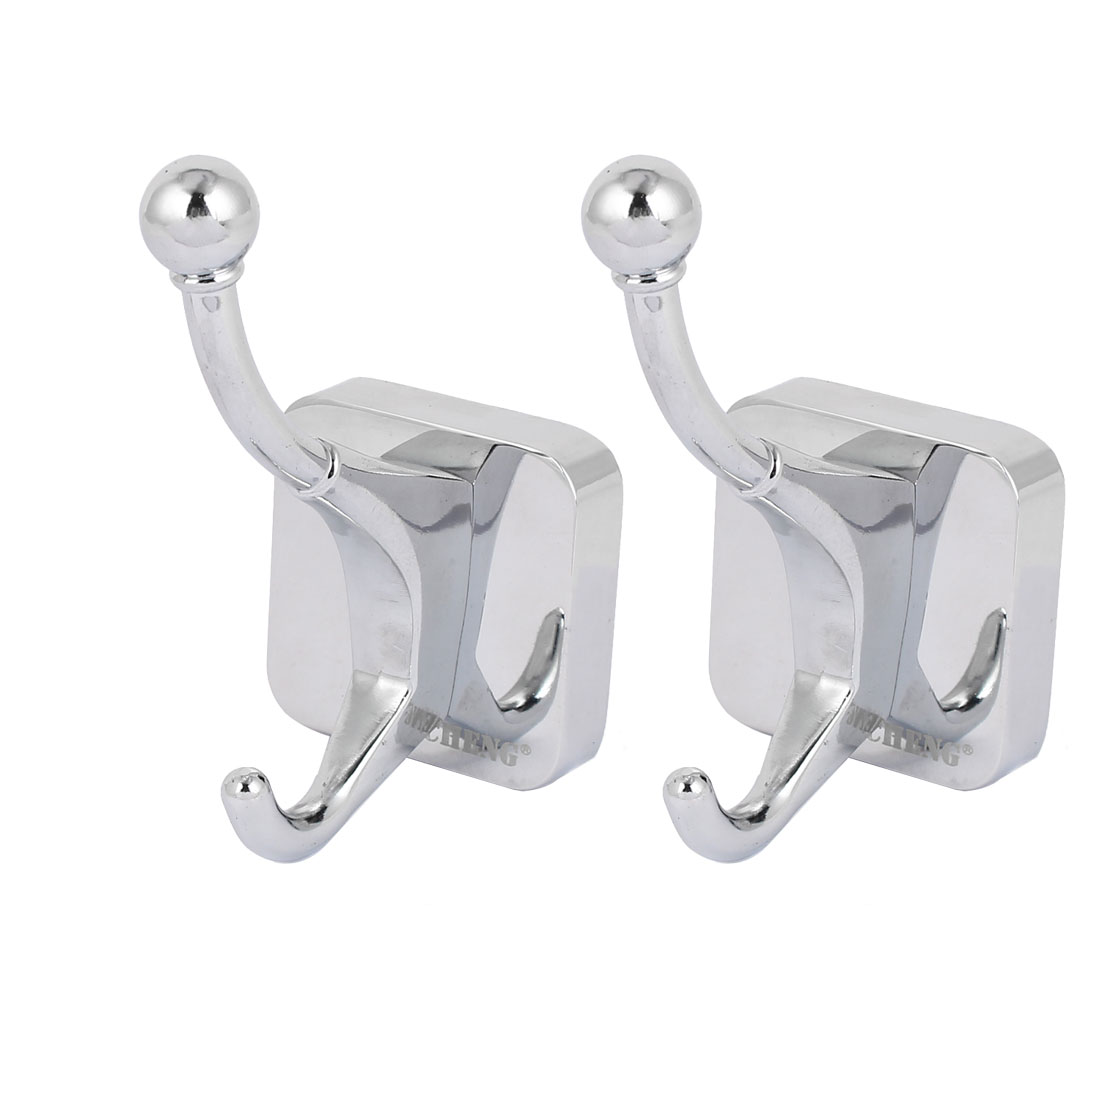 Bedroom Robe Hat Hanging Wall Mounted Zinc Alloy Chrome Plated Double Hanger Hook Silver Tone 2pcs